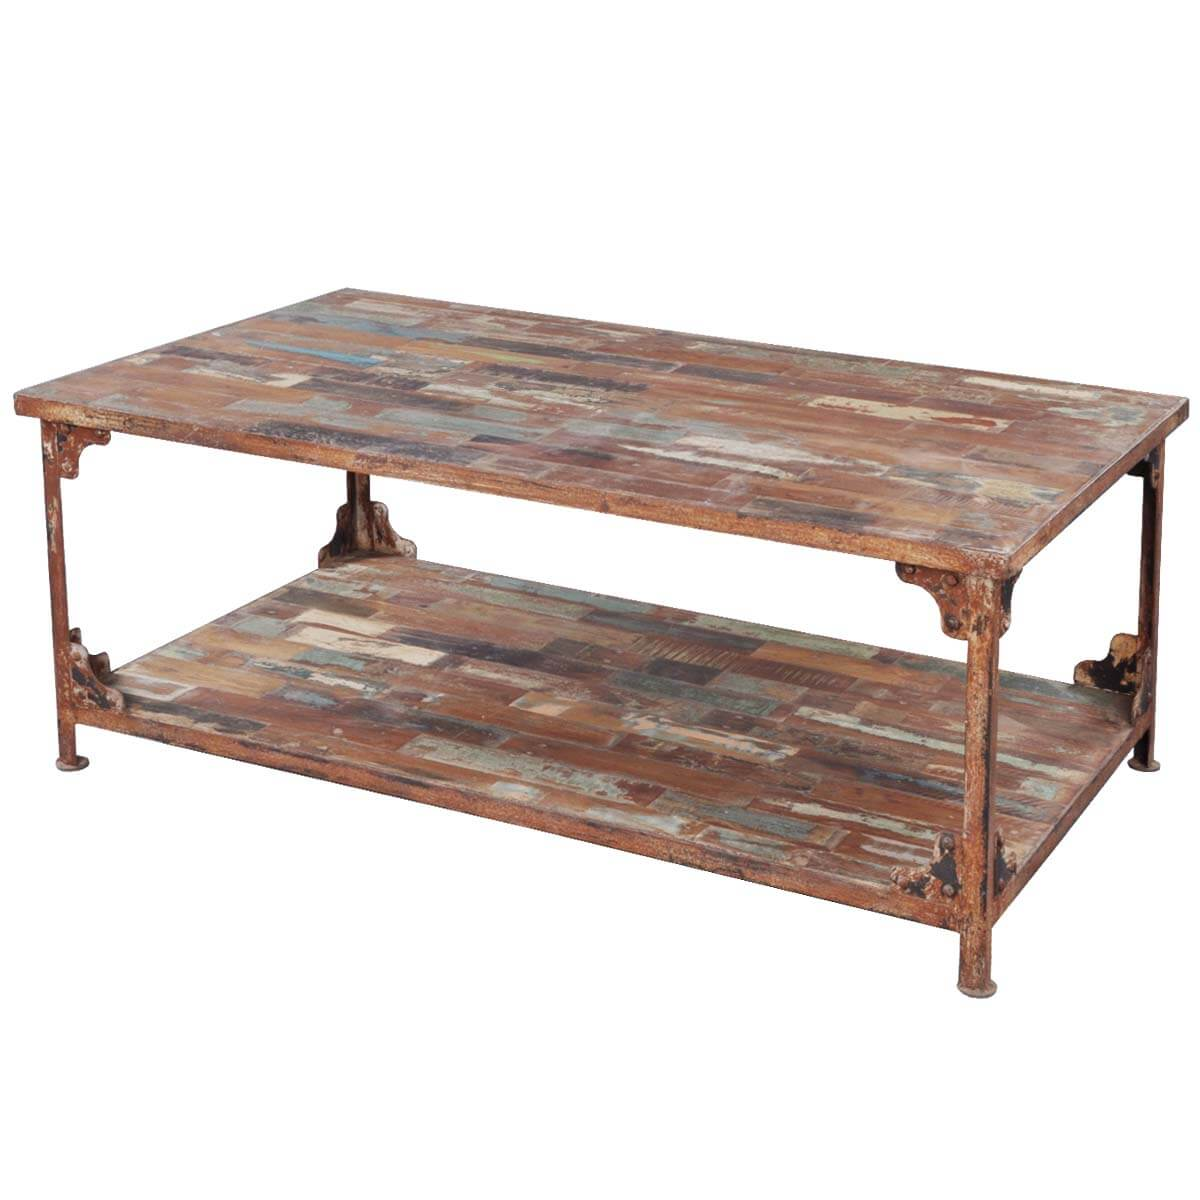 Distressed reclaimed wood industrial wrought iron rustic coffee table Rustic wood and metal coffee table